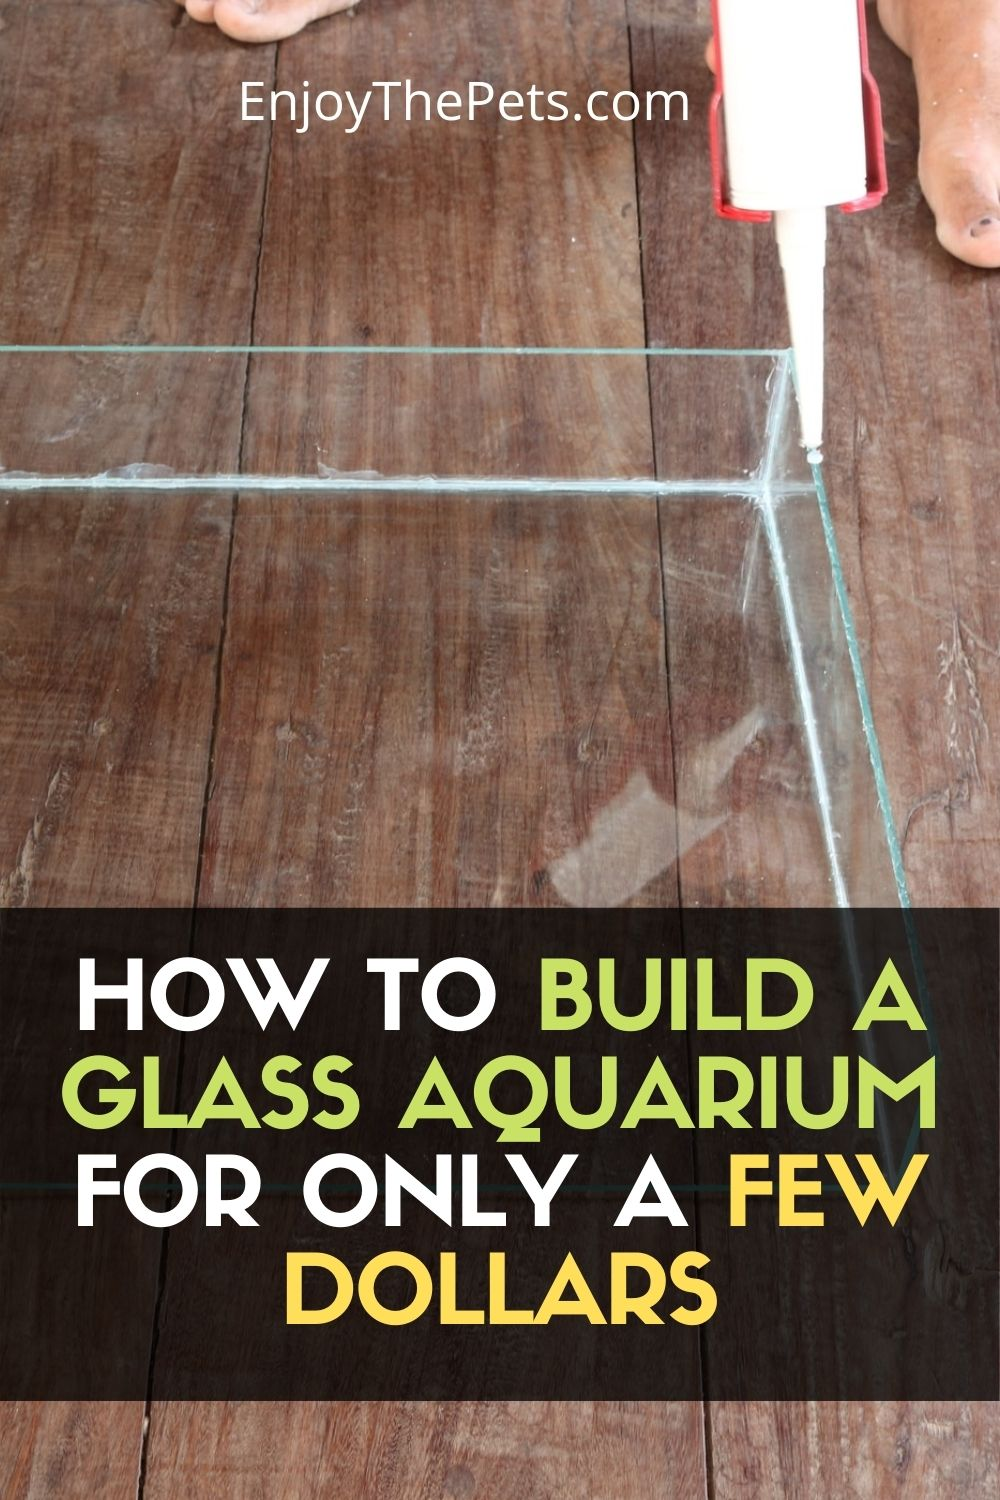 How to Build a Glass Aquarium for only a few Dollars